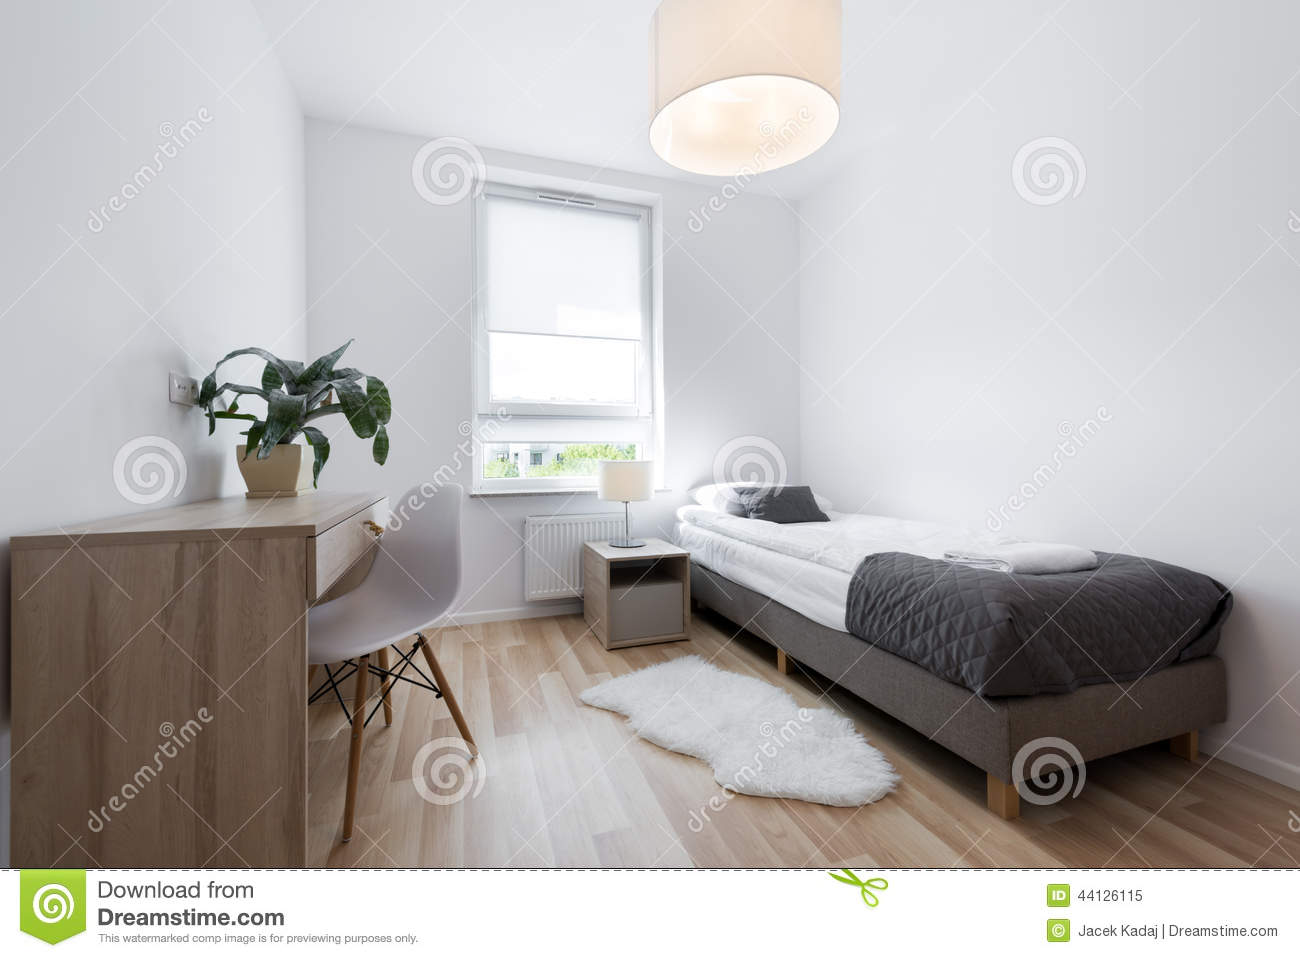 Small modern sleeping room interior design stock image for Sleeping room decoration